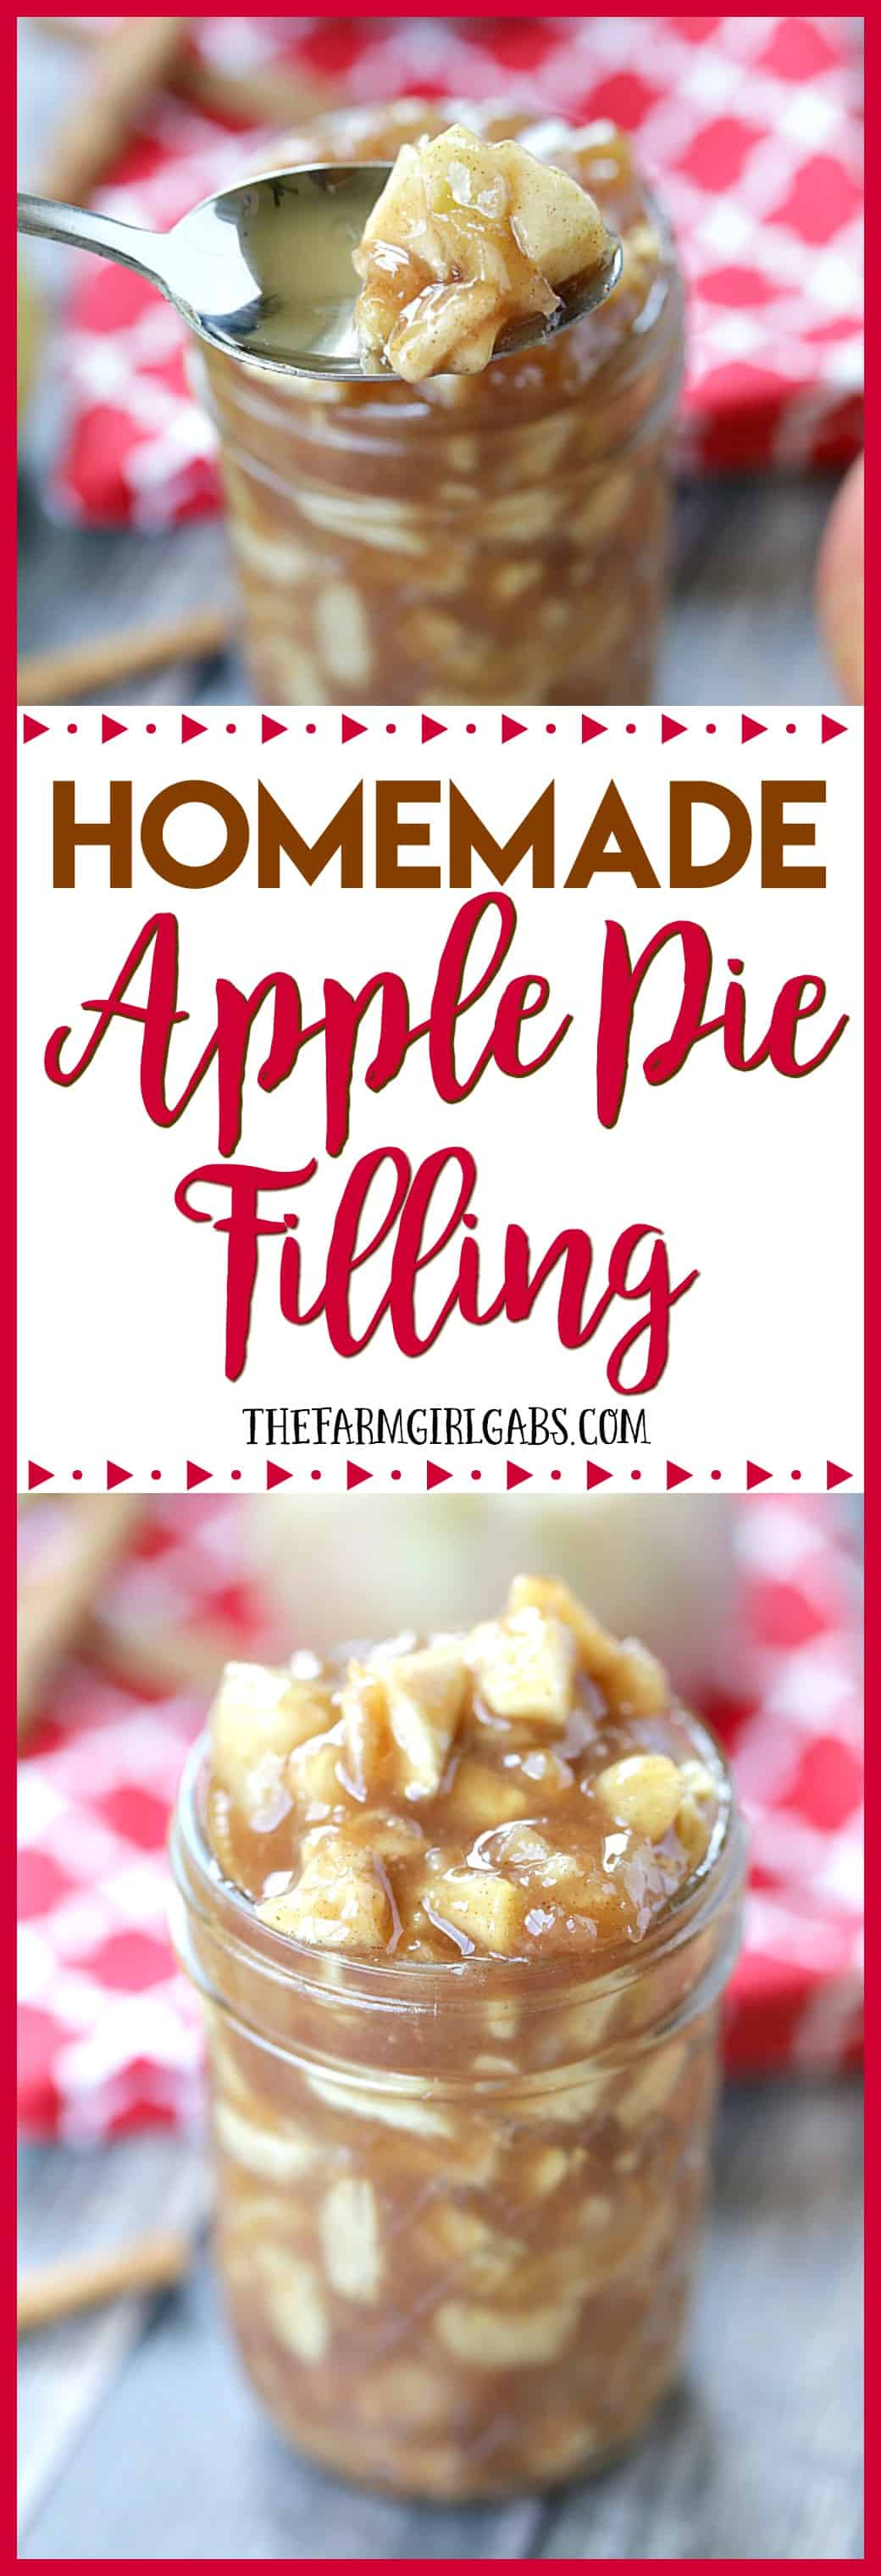 There is nothing as classic as good old apple pie. Make thisHomemade Apple Pie Filling and store in your pantry so you can whip up an apple pie anytime. #applepie #dessert #pierecipes